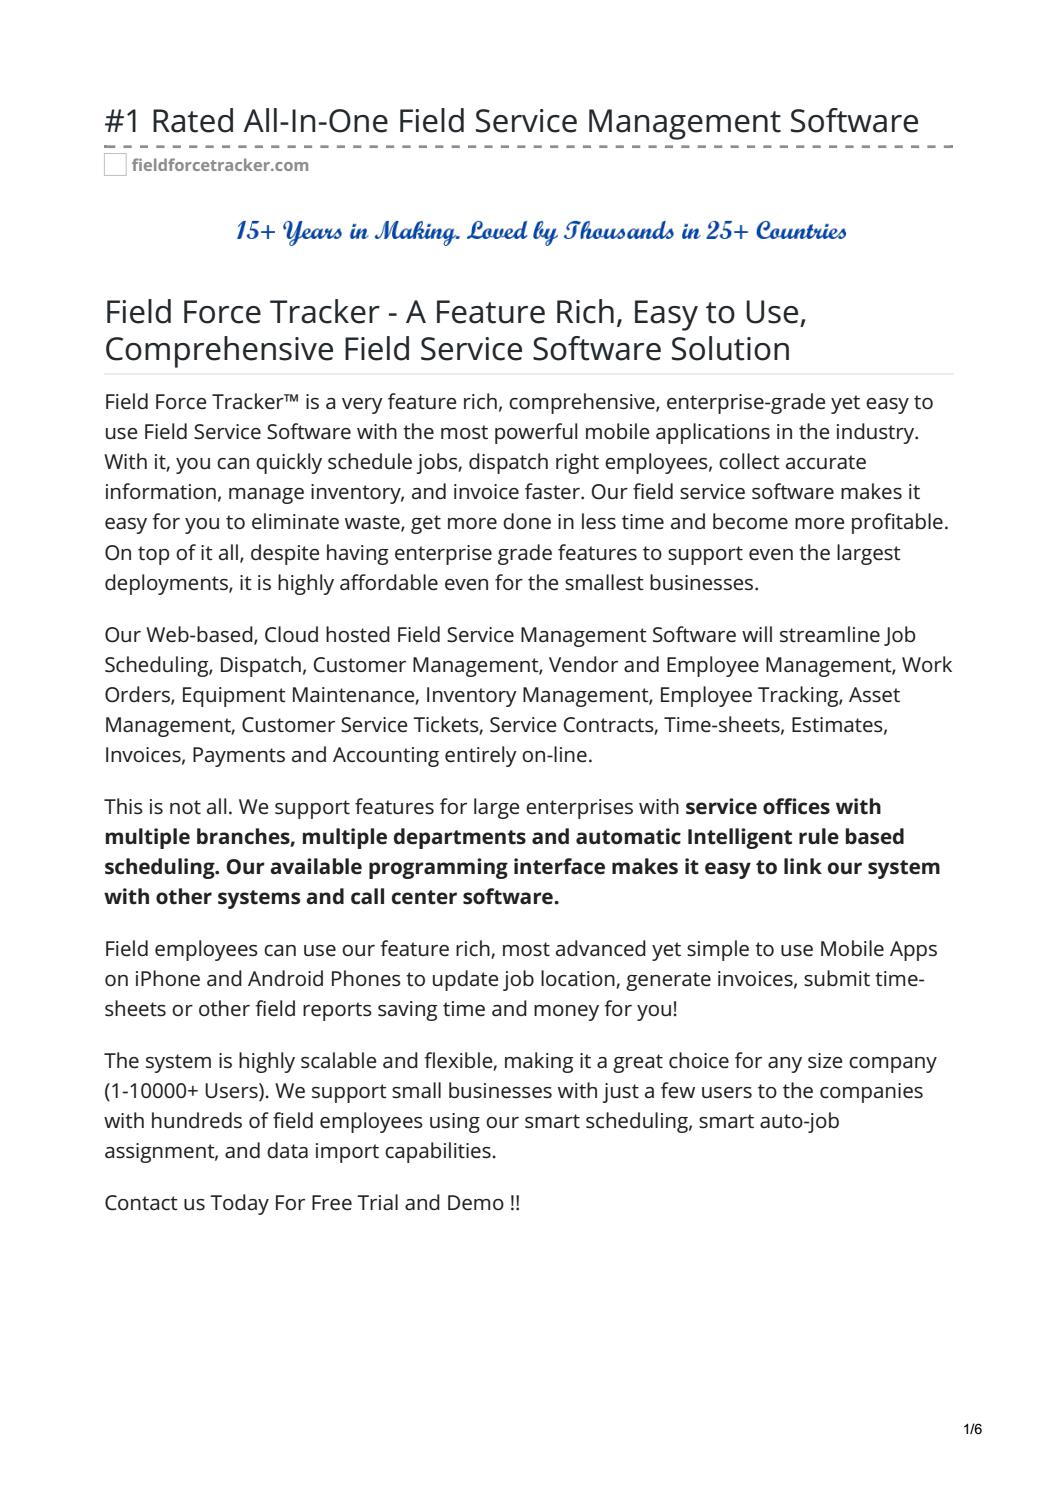 fieldforcetracker -#1 Rated All-In-One Field Service